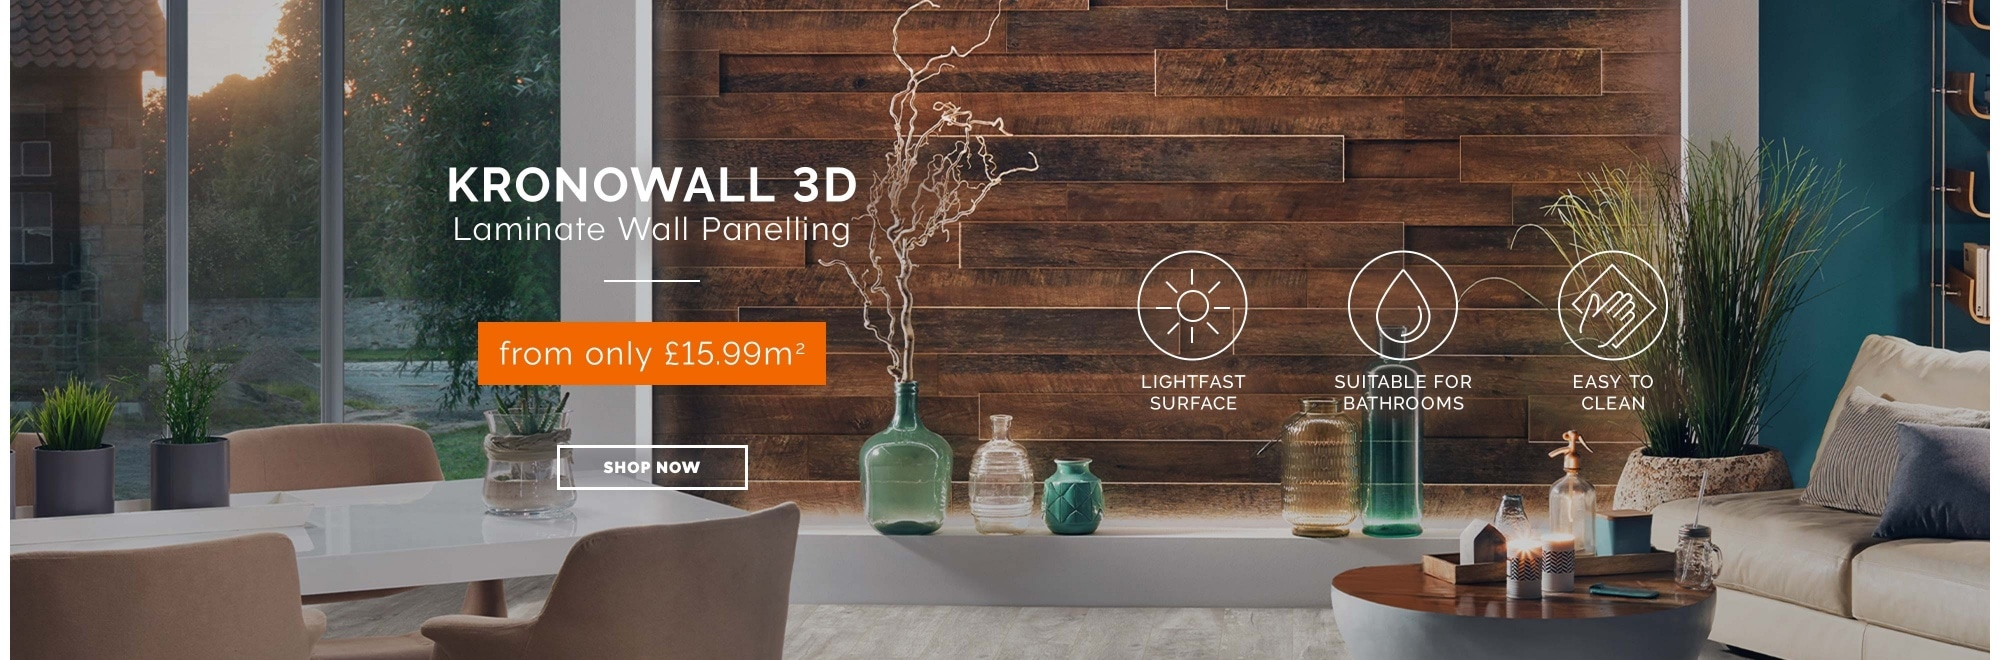 Kronowall 3D wall panelling